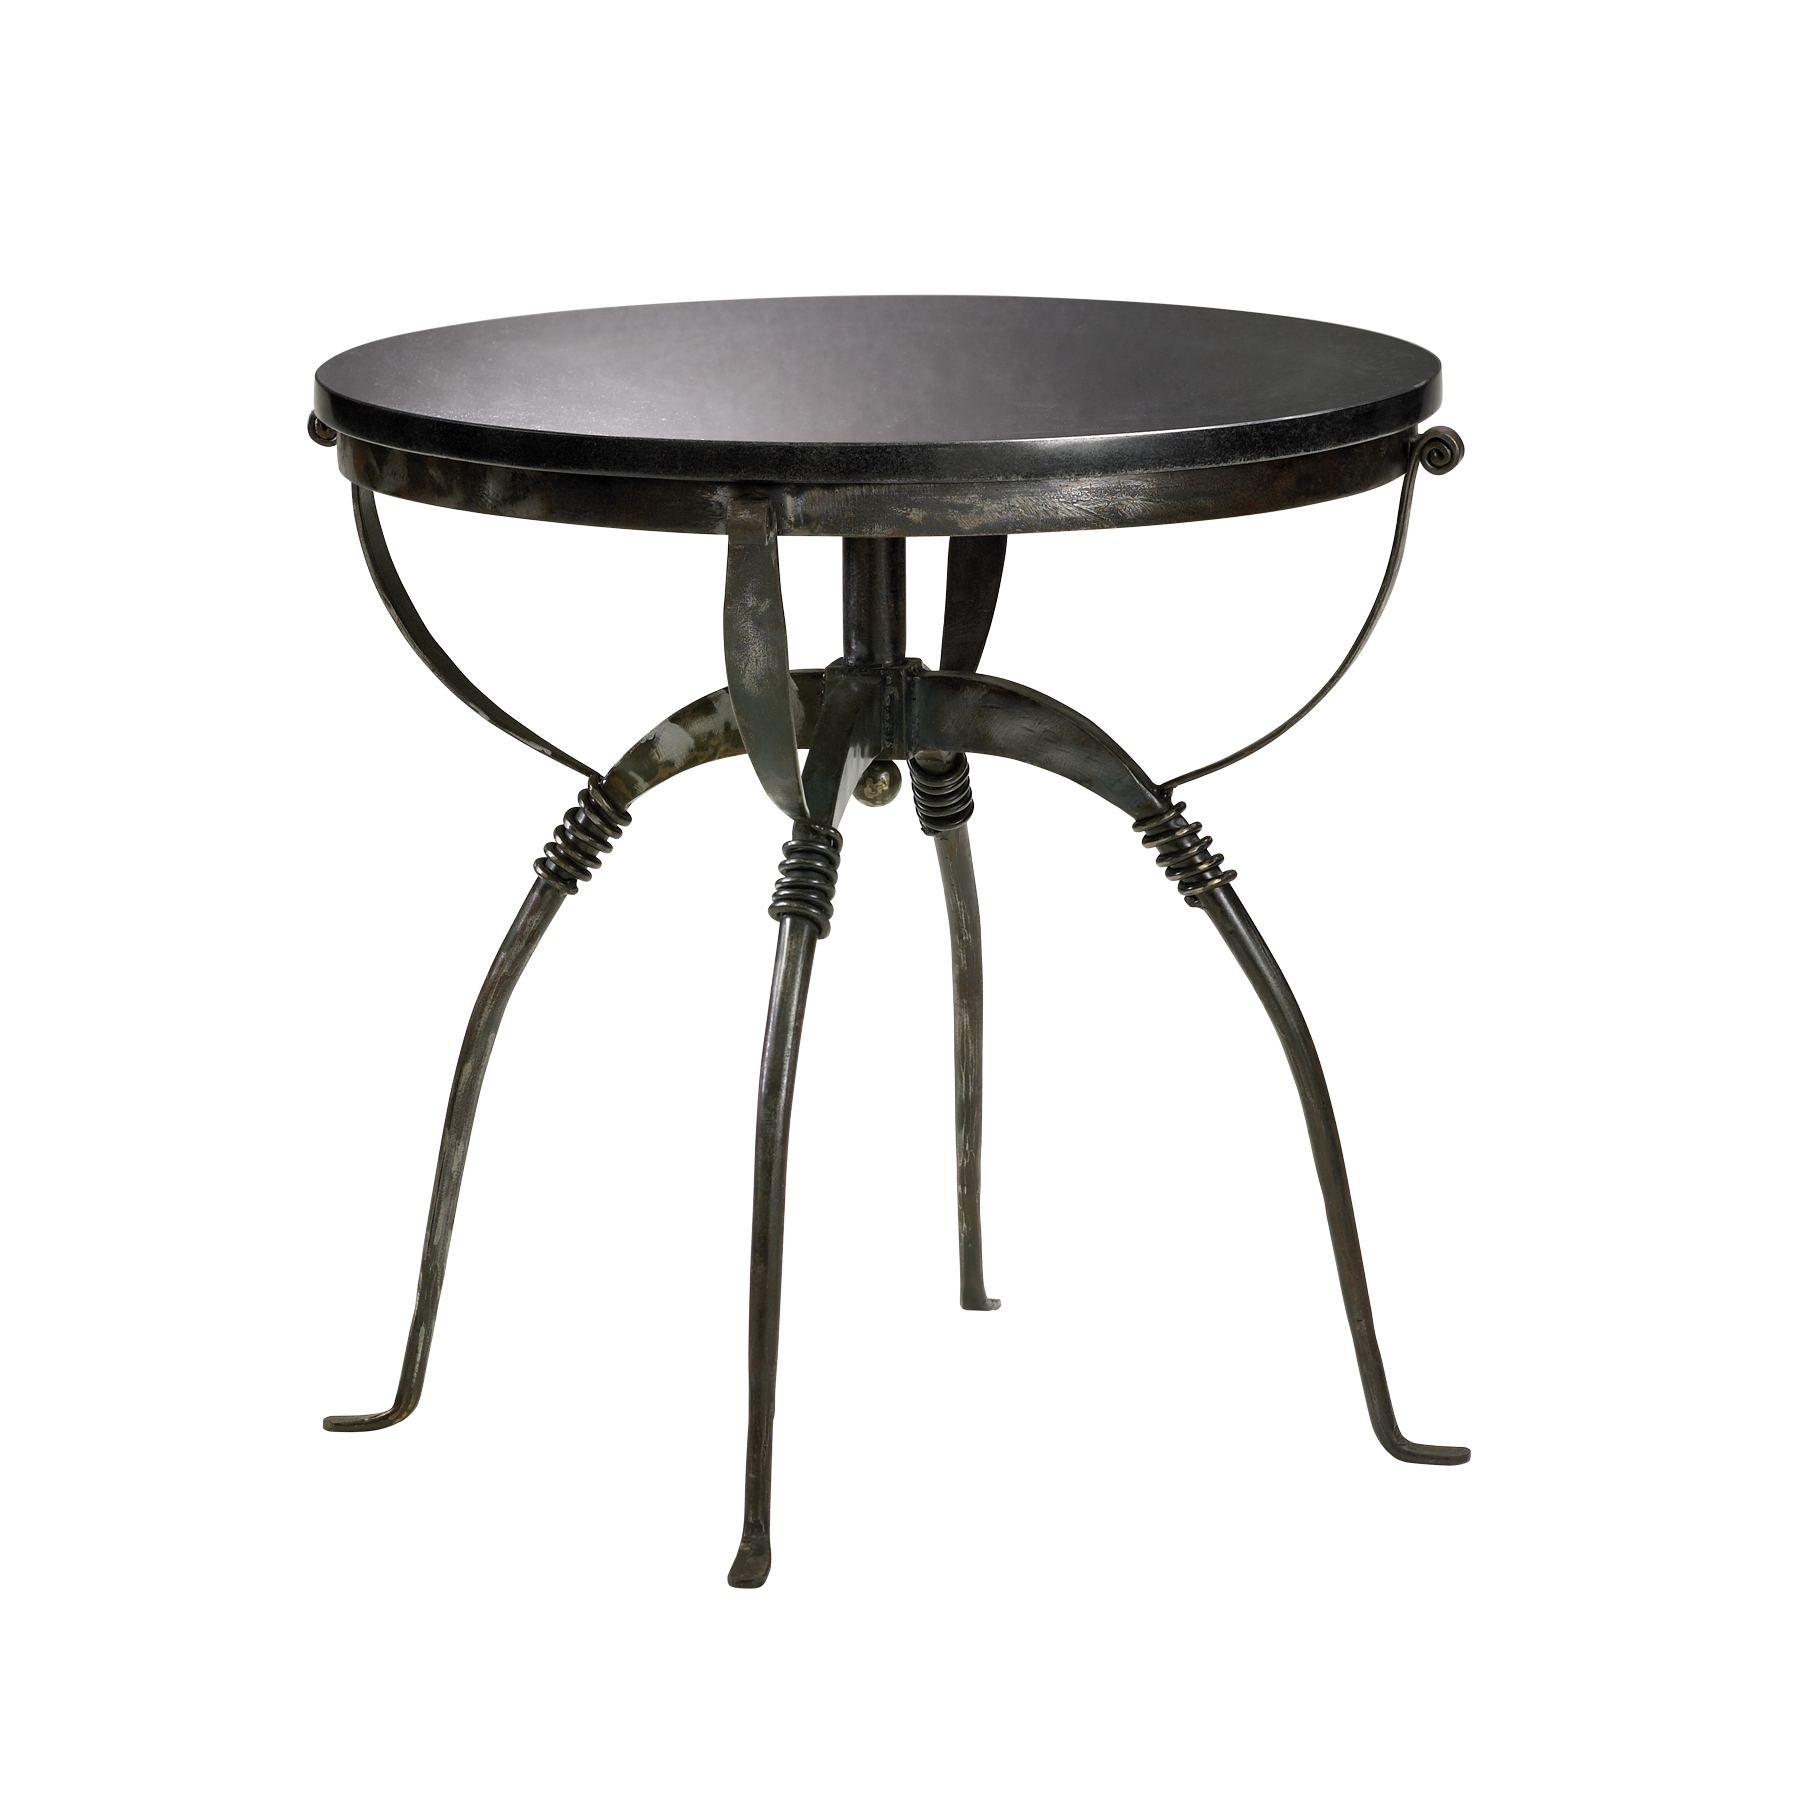 remarkable small round metal accent table gentlemen international meaning responsible discussion logo soy world law meeting agenda calypso sessions room spotify knights pod family